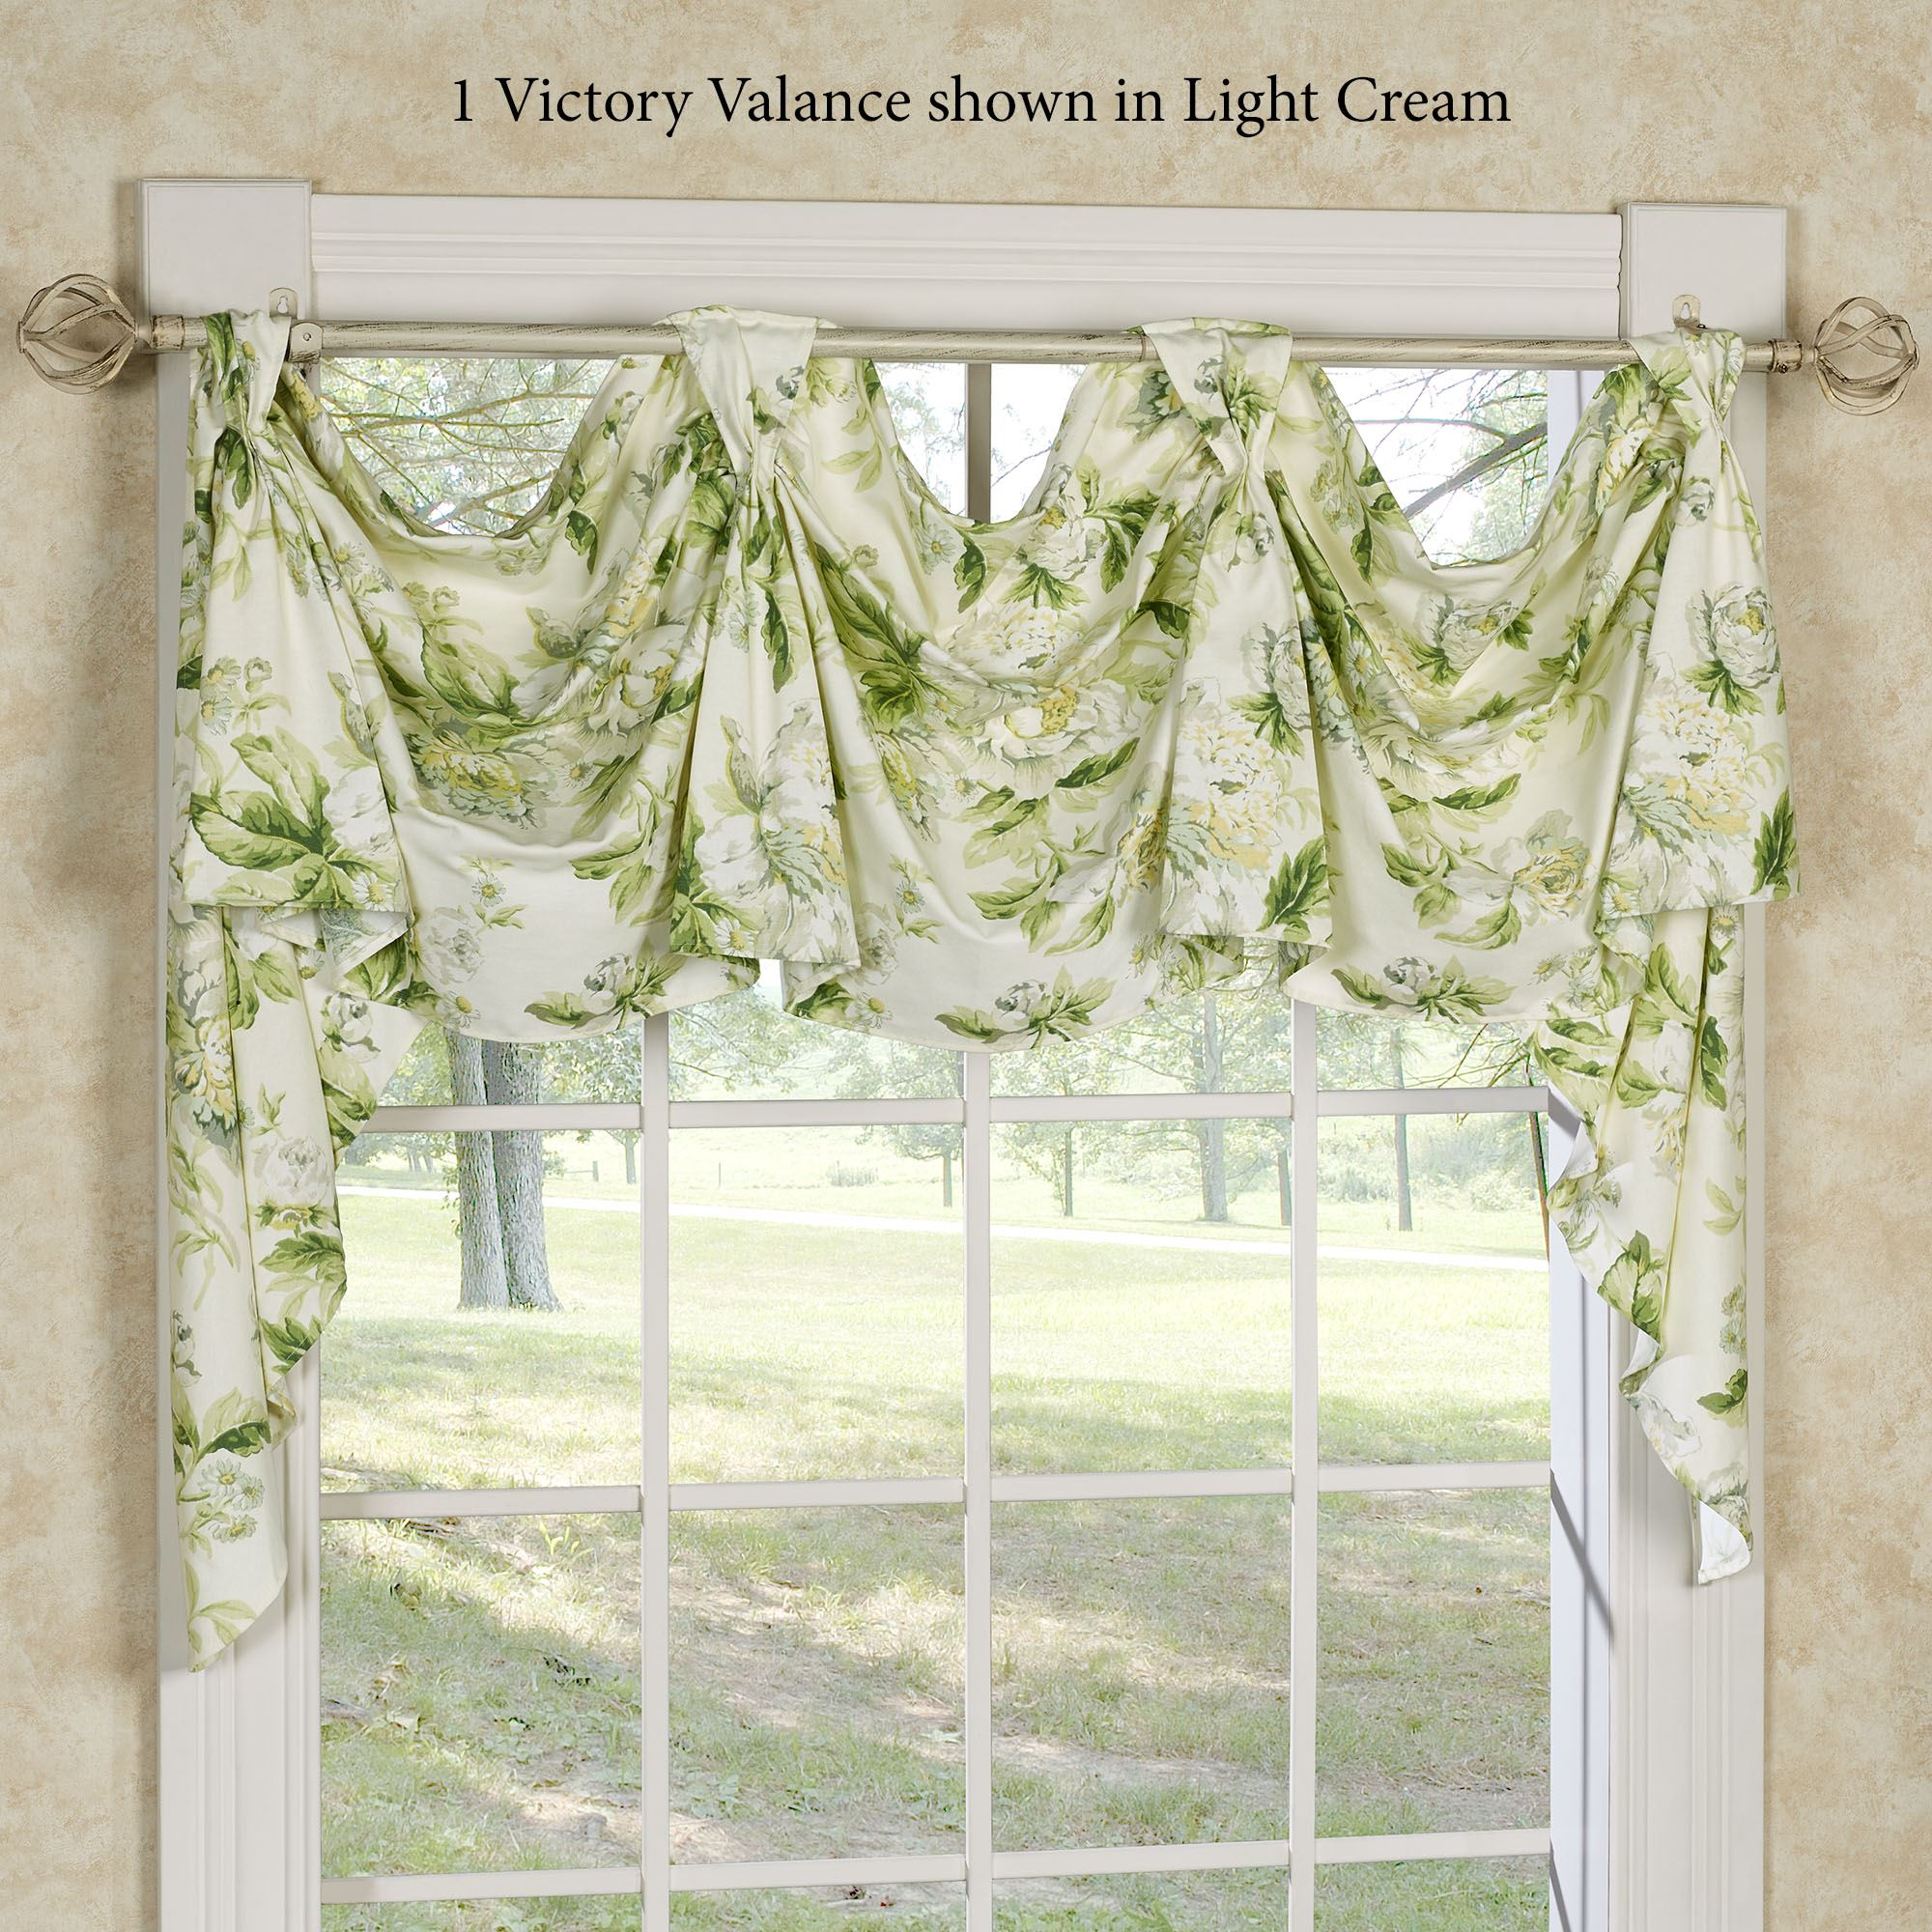 Set Bay For Valances Lace Valance Curtains Diy Pattern For Medallion Window Curtain Valances (View 15 of 20)